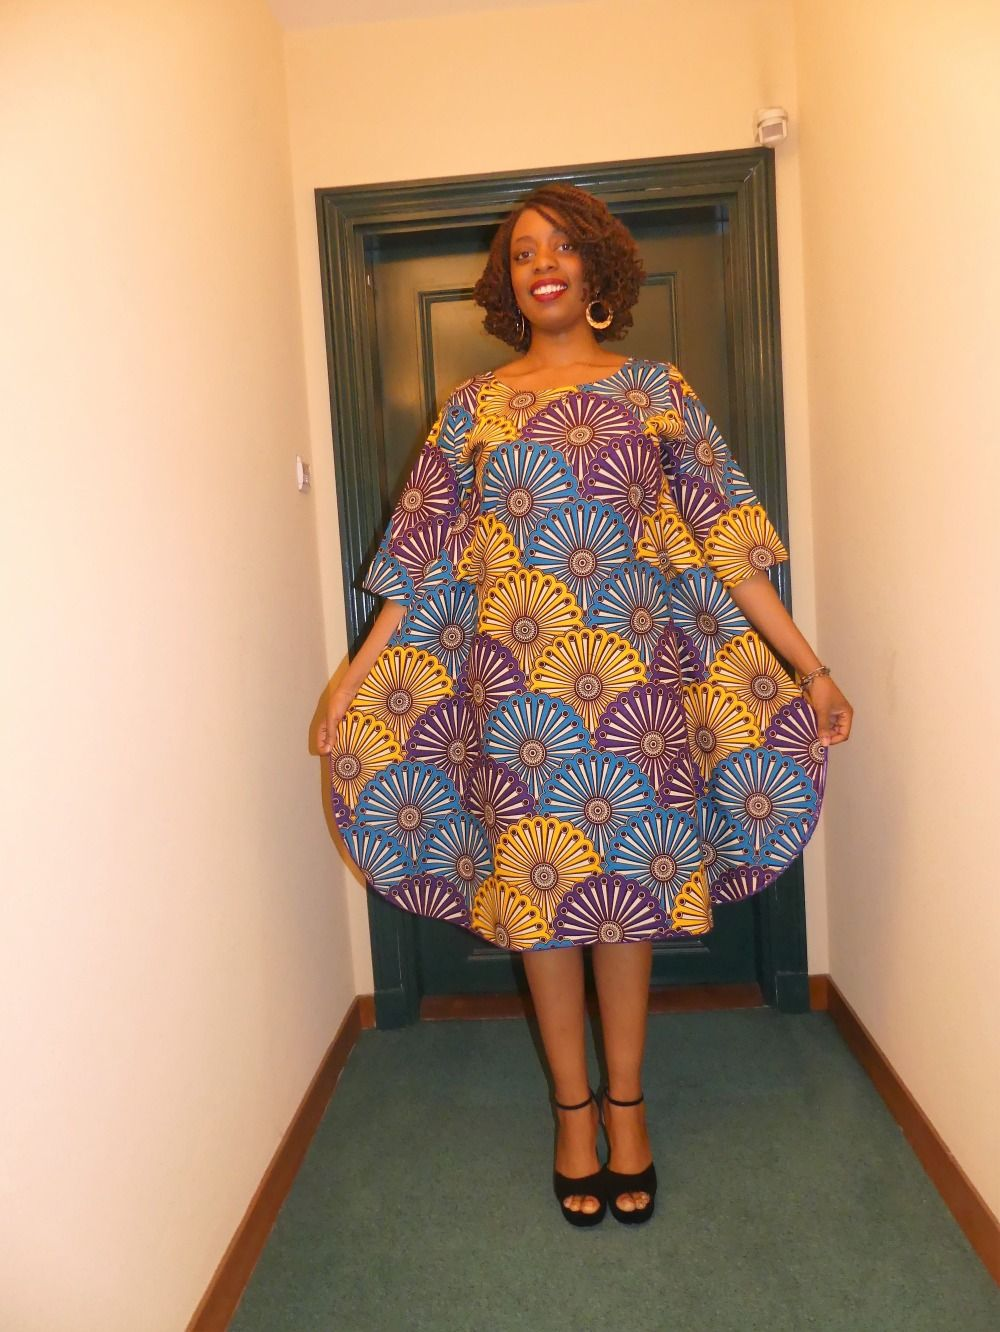 Model Pagne Africain | Styles vestimentaires africains, Robe africaine